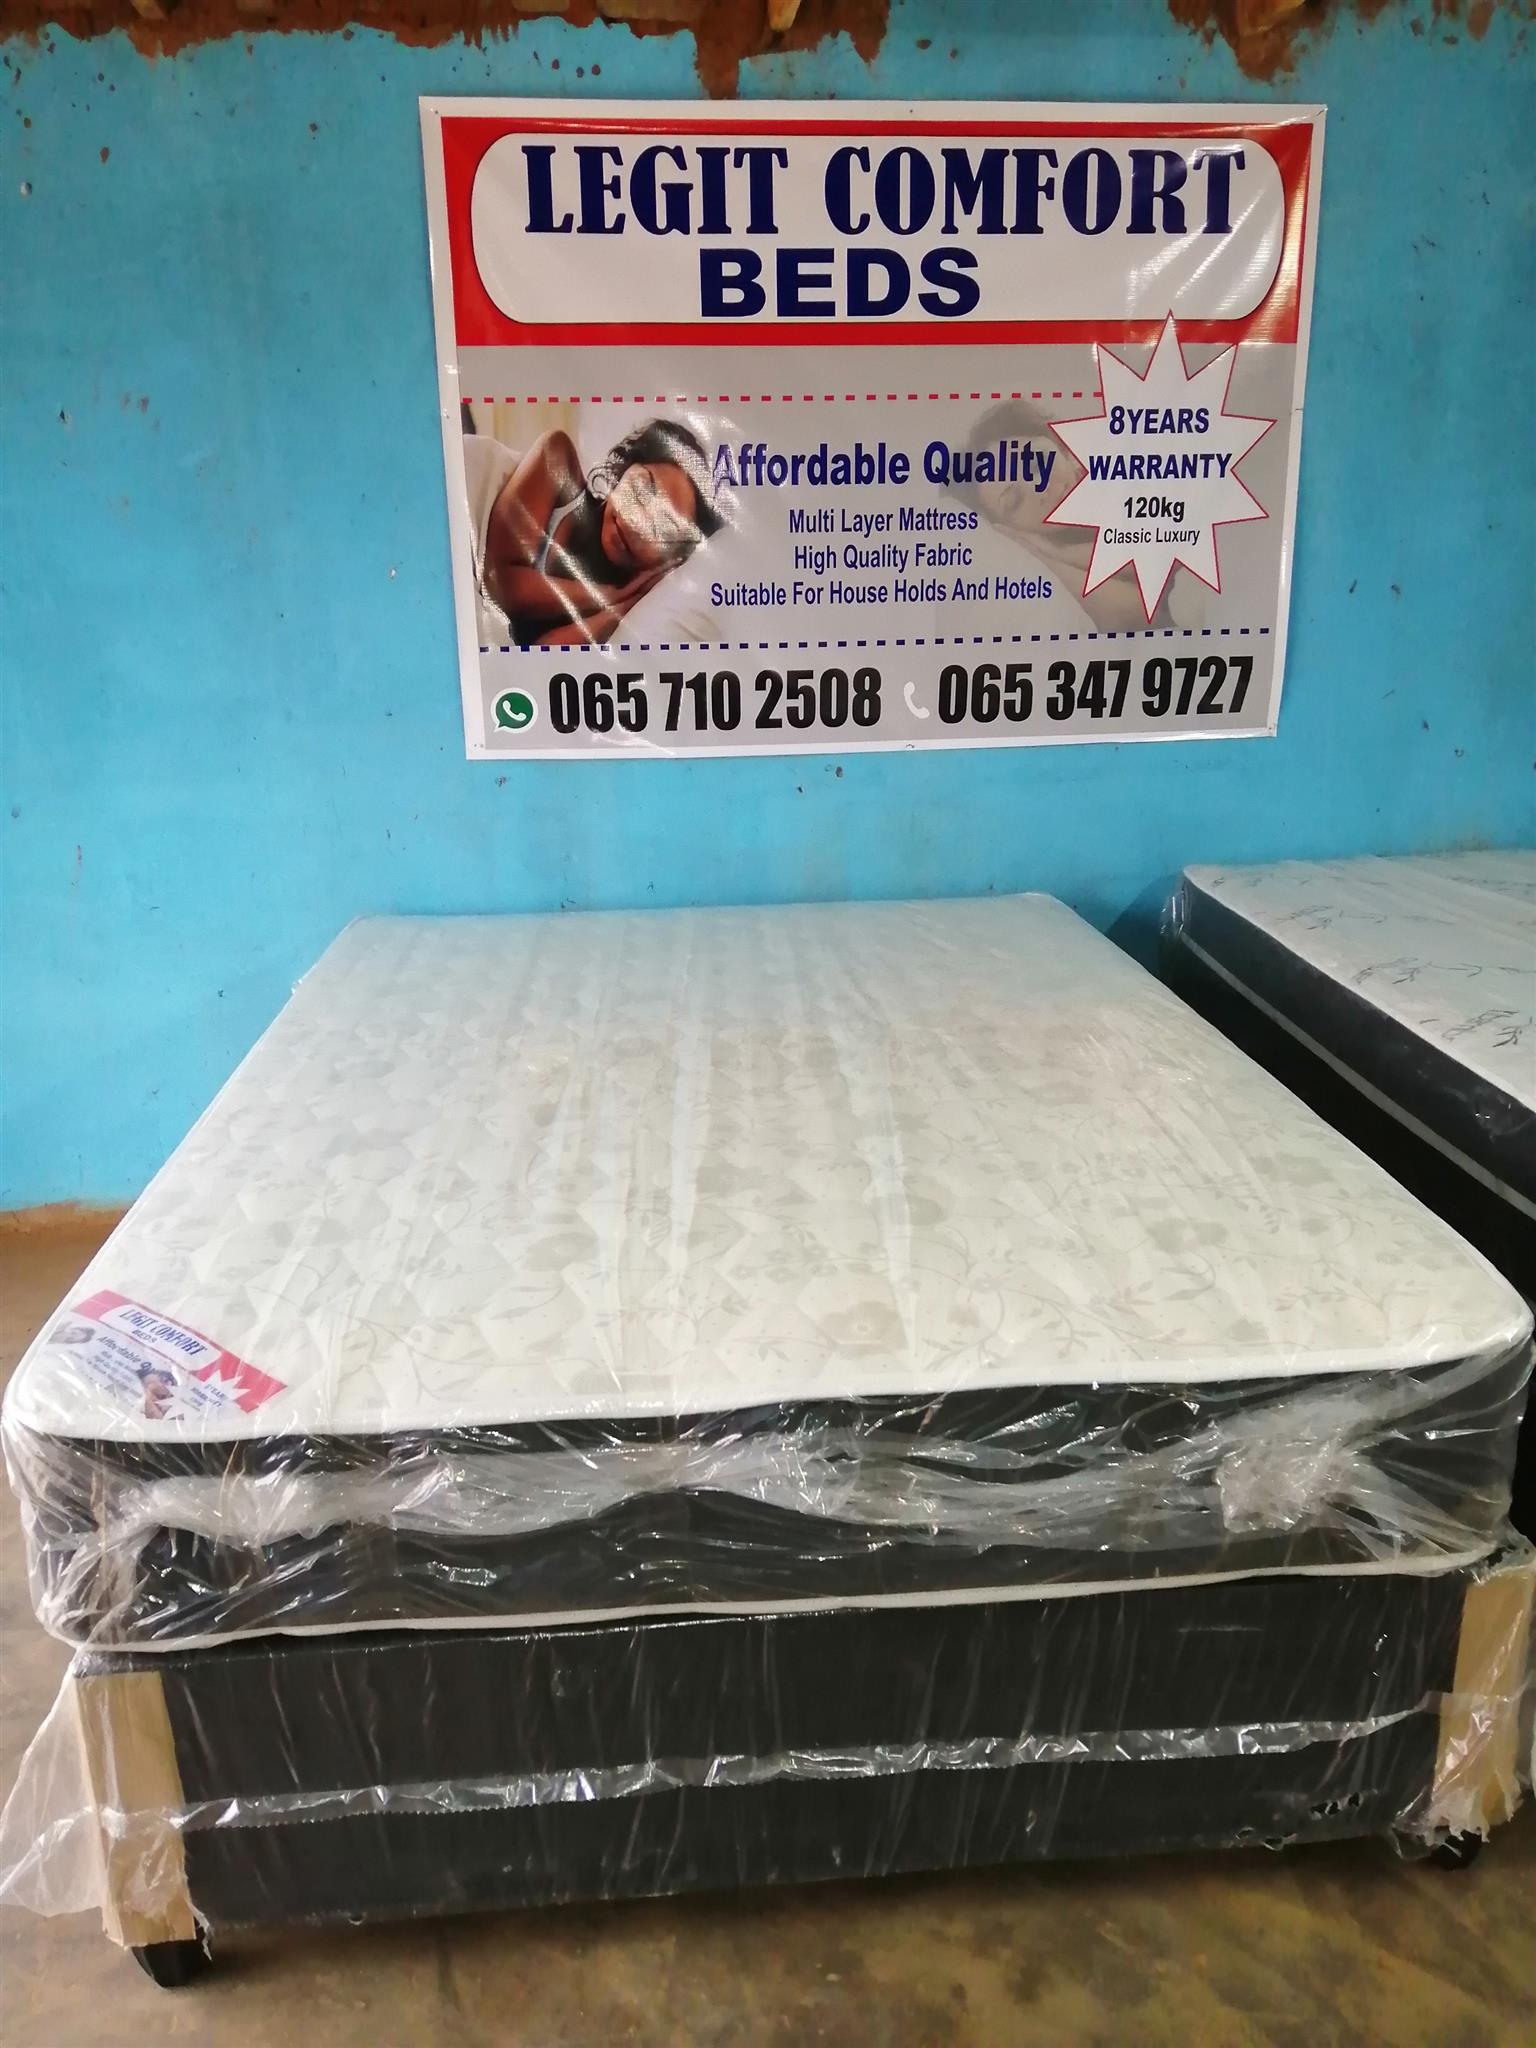 Legit Comfort Beds affordable quality brand new beds. Cash on delivery no money upfront